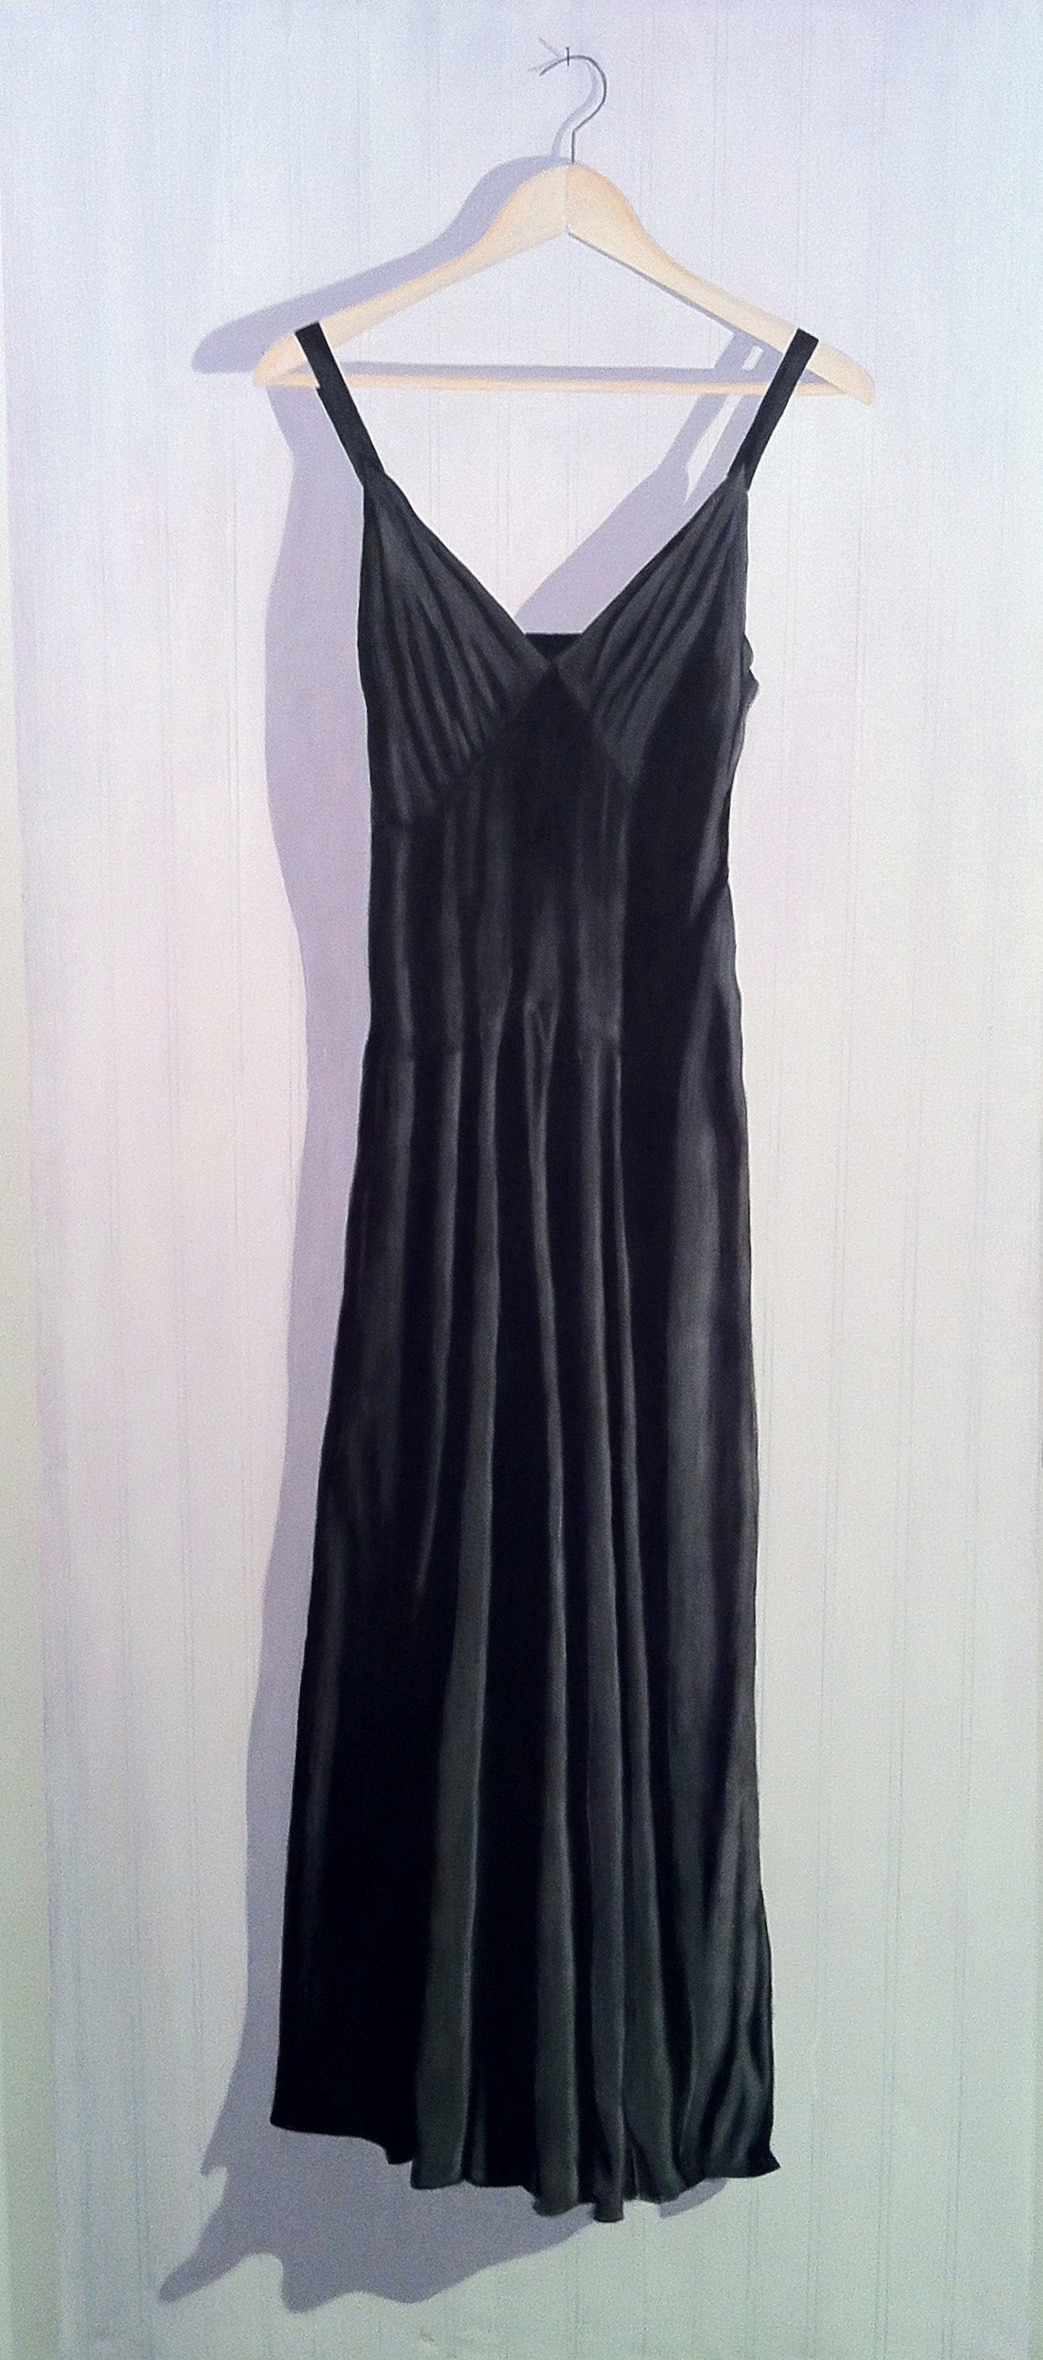 Vintage Black Dress, 30 X 70, acrylic